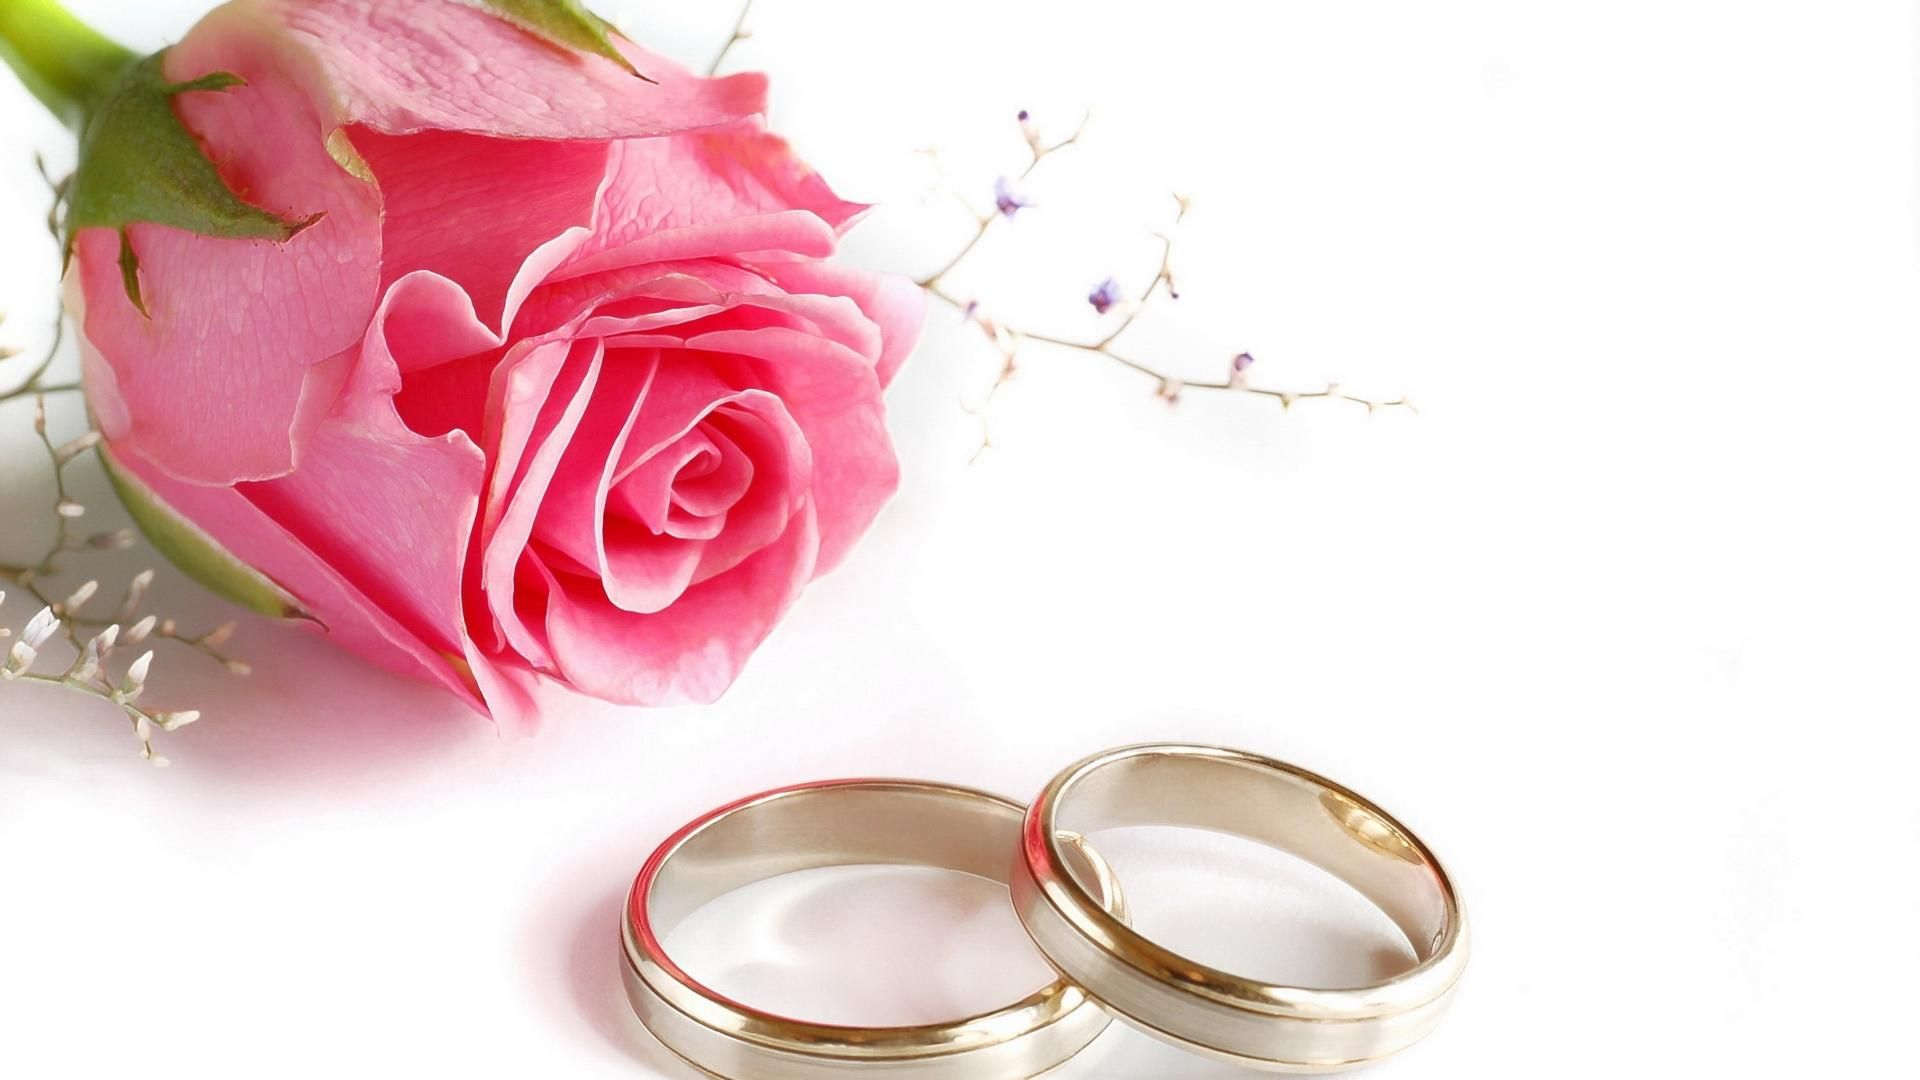 Wedding Rings Rose Flower HD Wallpaper | Хочу здесь побывать ...